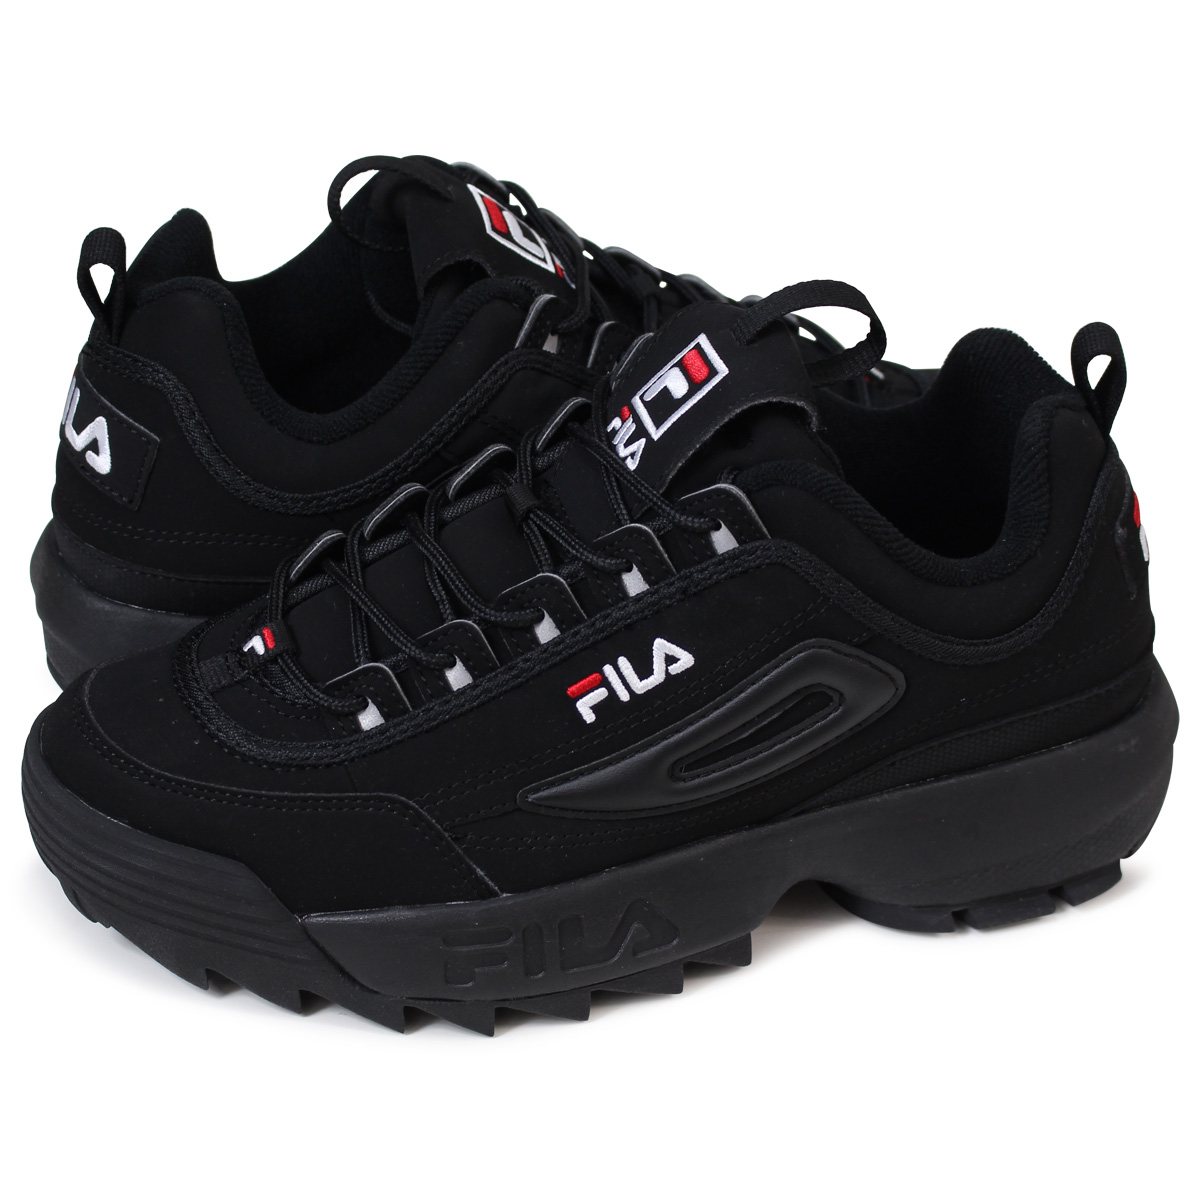 1de2bdcc660c FILA DISRUPTOR 2 フィラディスラプター 2 sneakers Lady s men black FS1HTA1078X  load  planned Shinnyu load in reservation product 5 11 containing